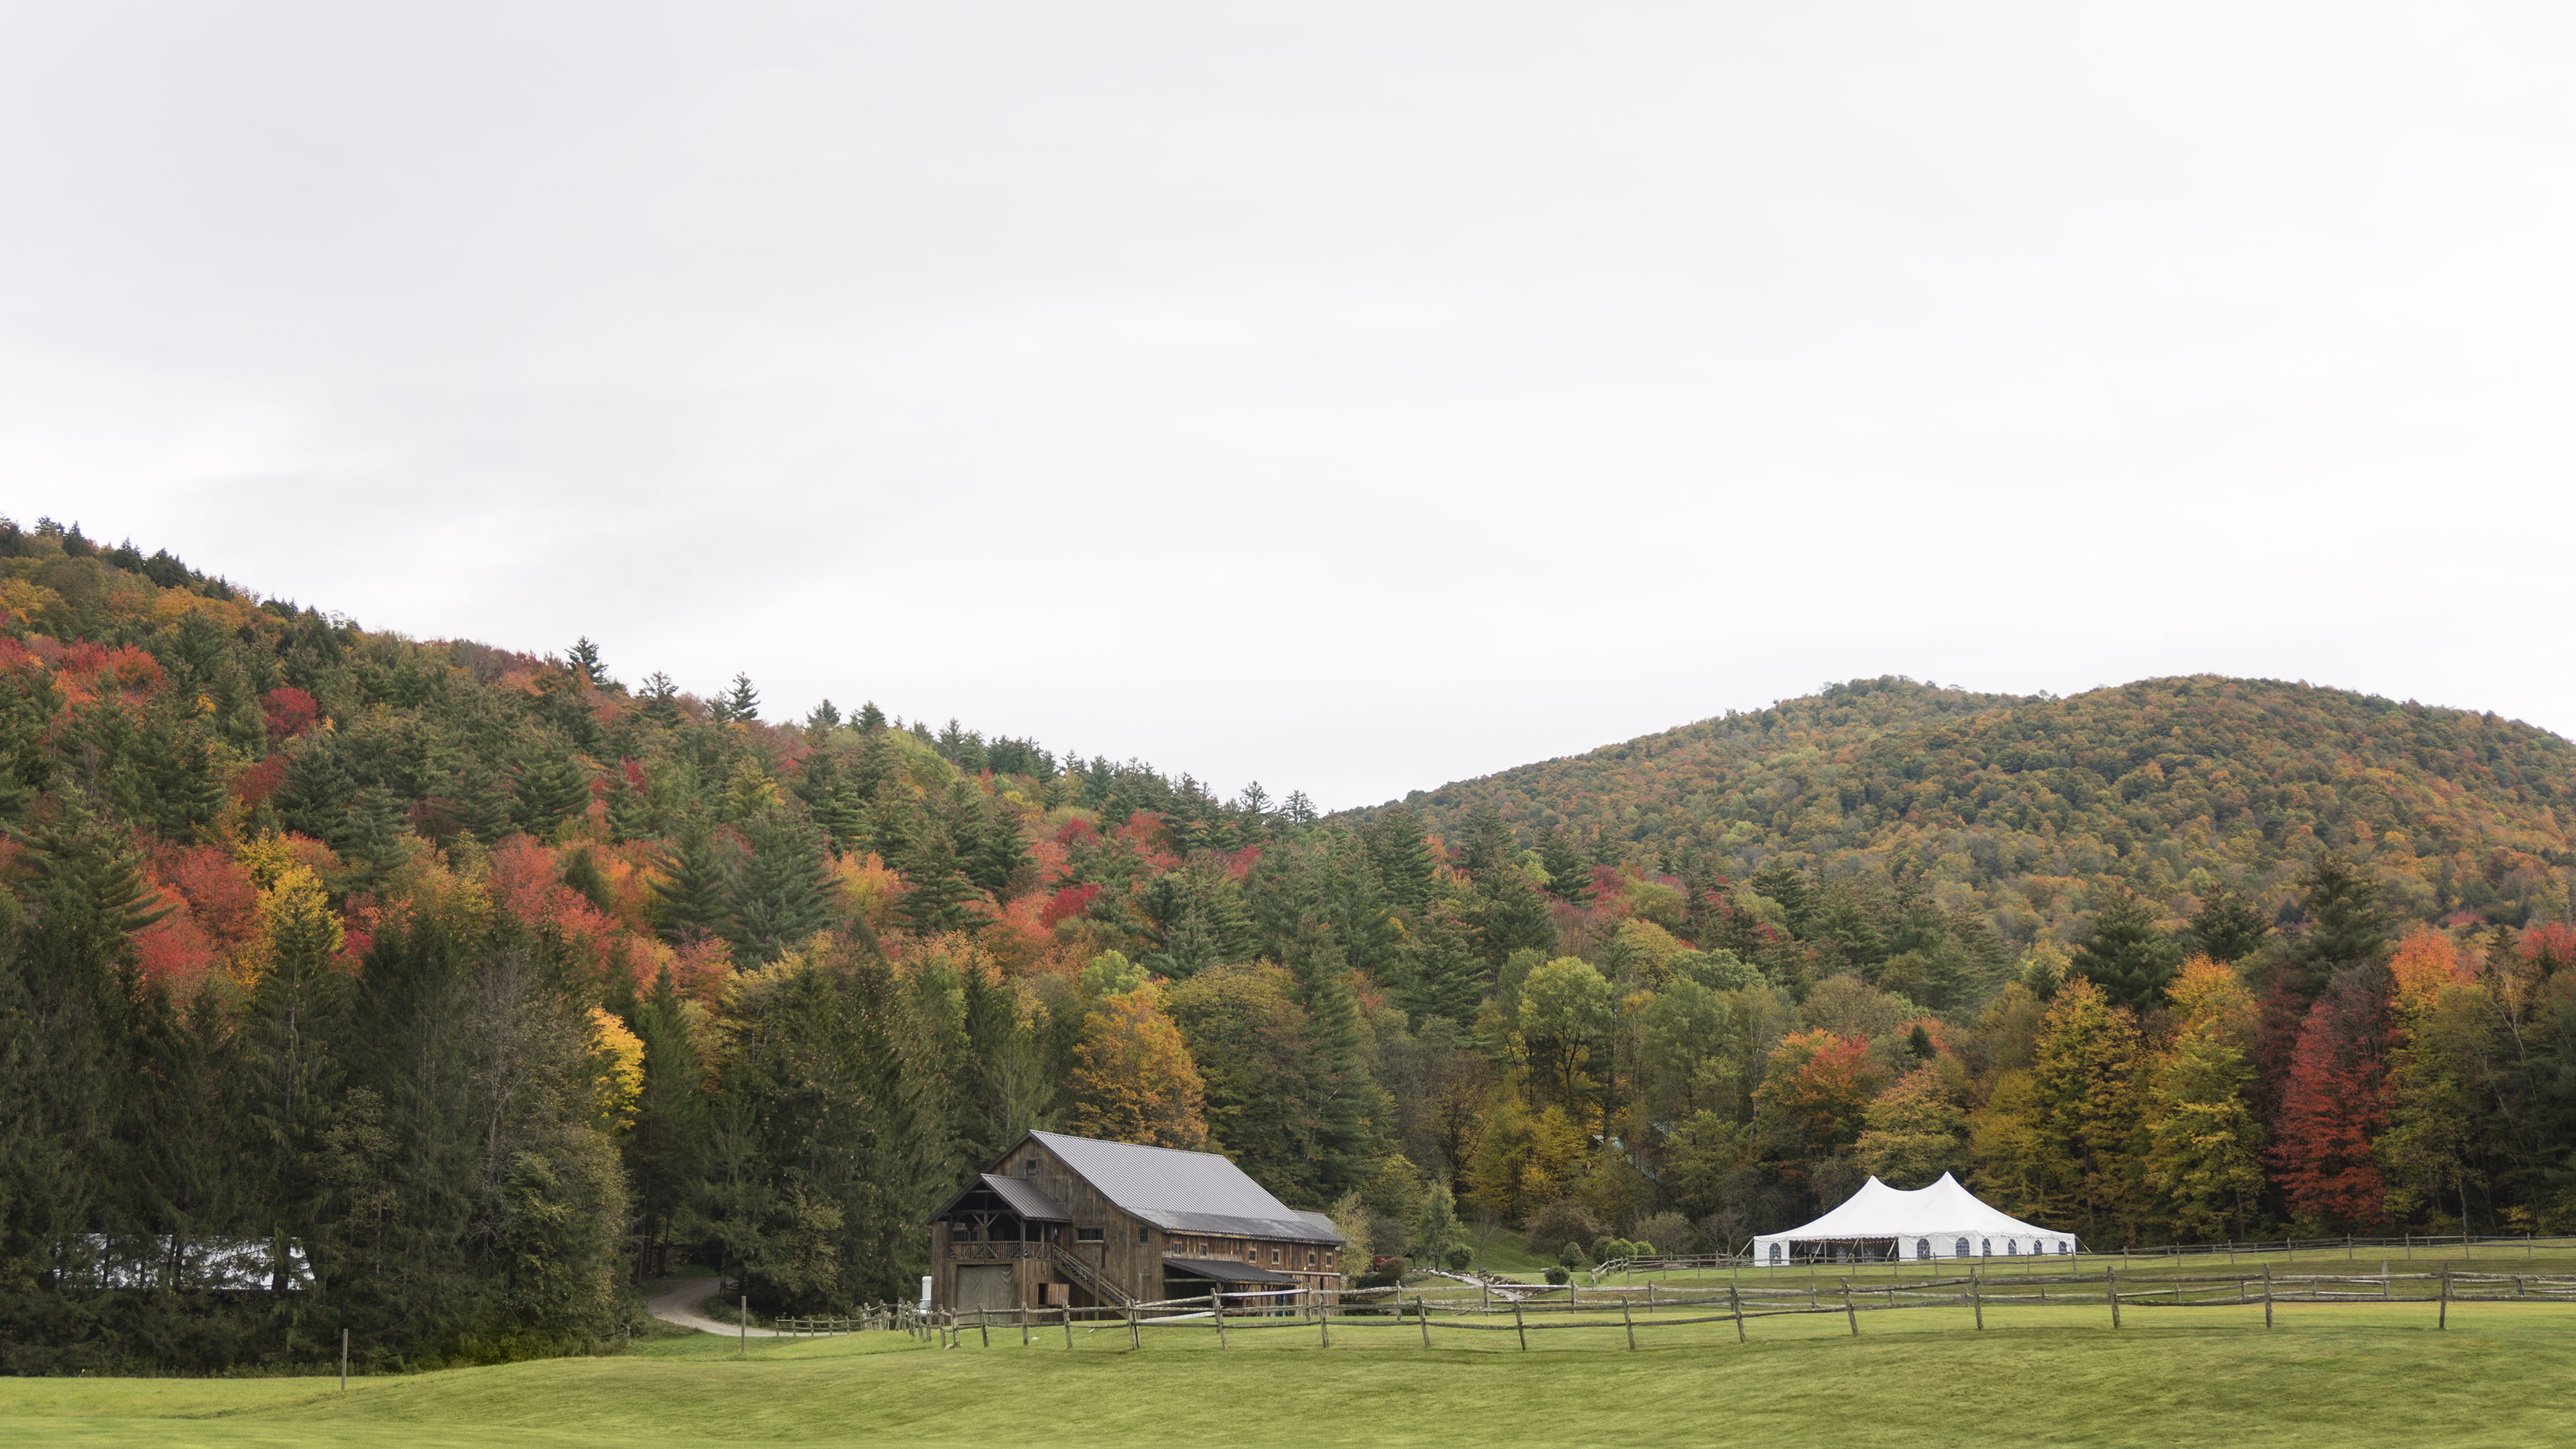 Vermont country wedding venue with fall colors